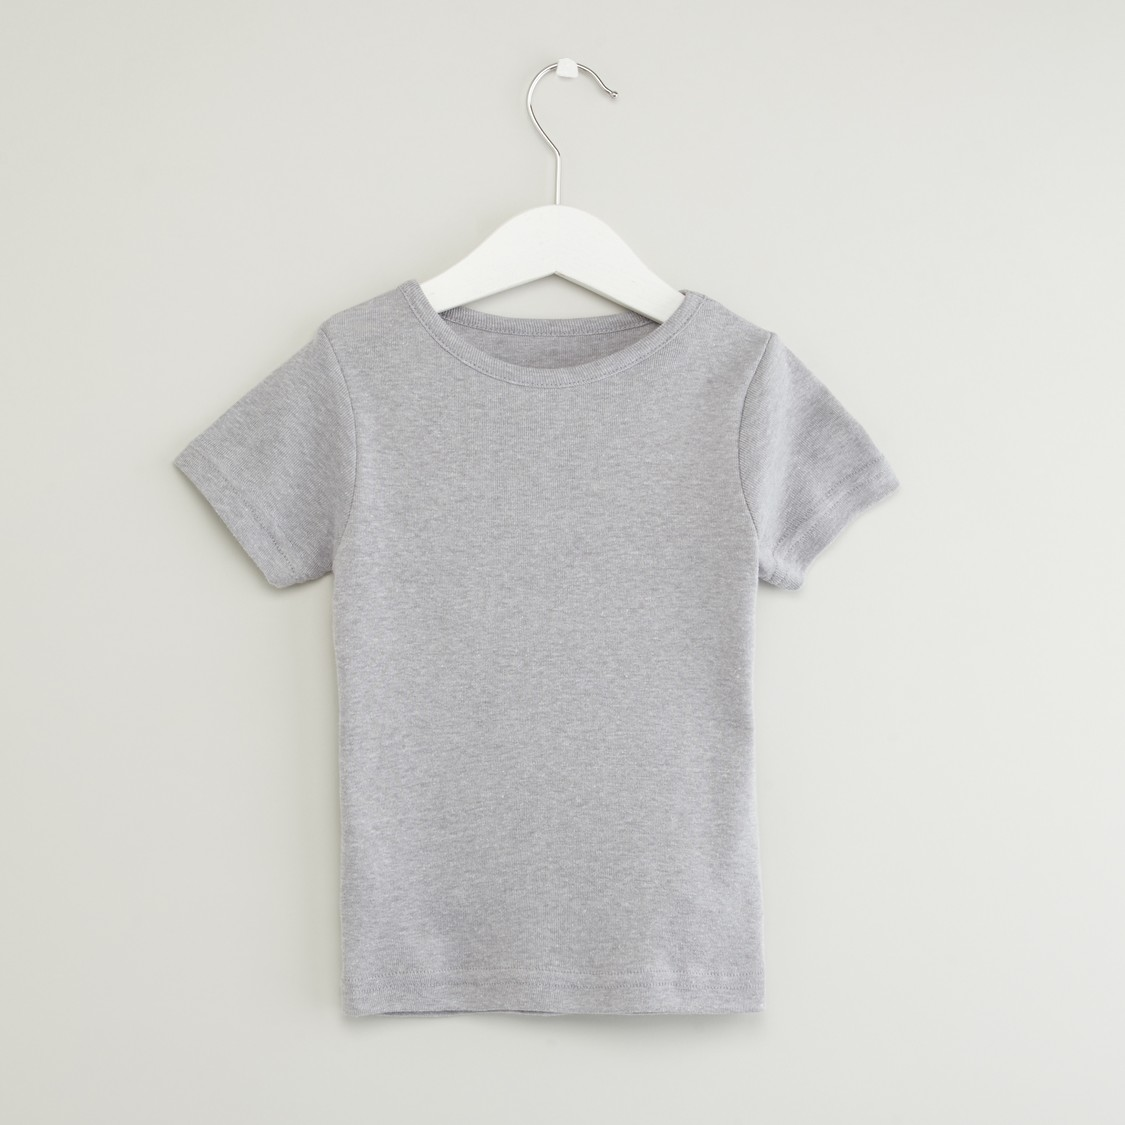 Set of 2 - Plain T-shirts with Round Neck and Short Sleeves